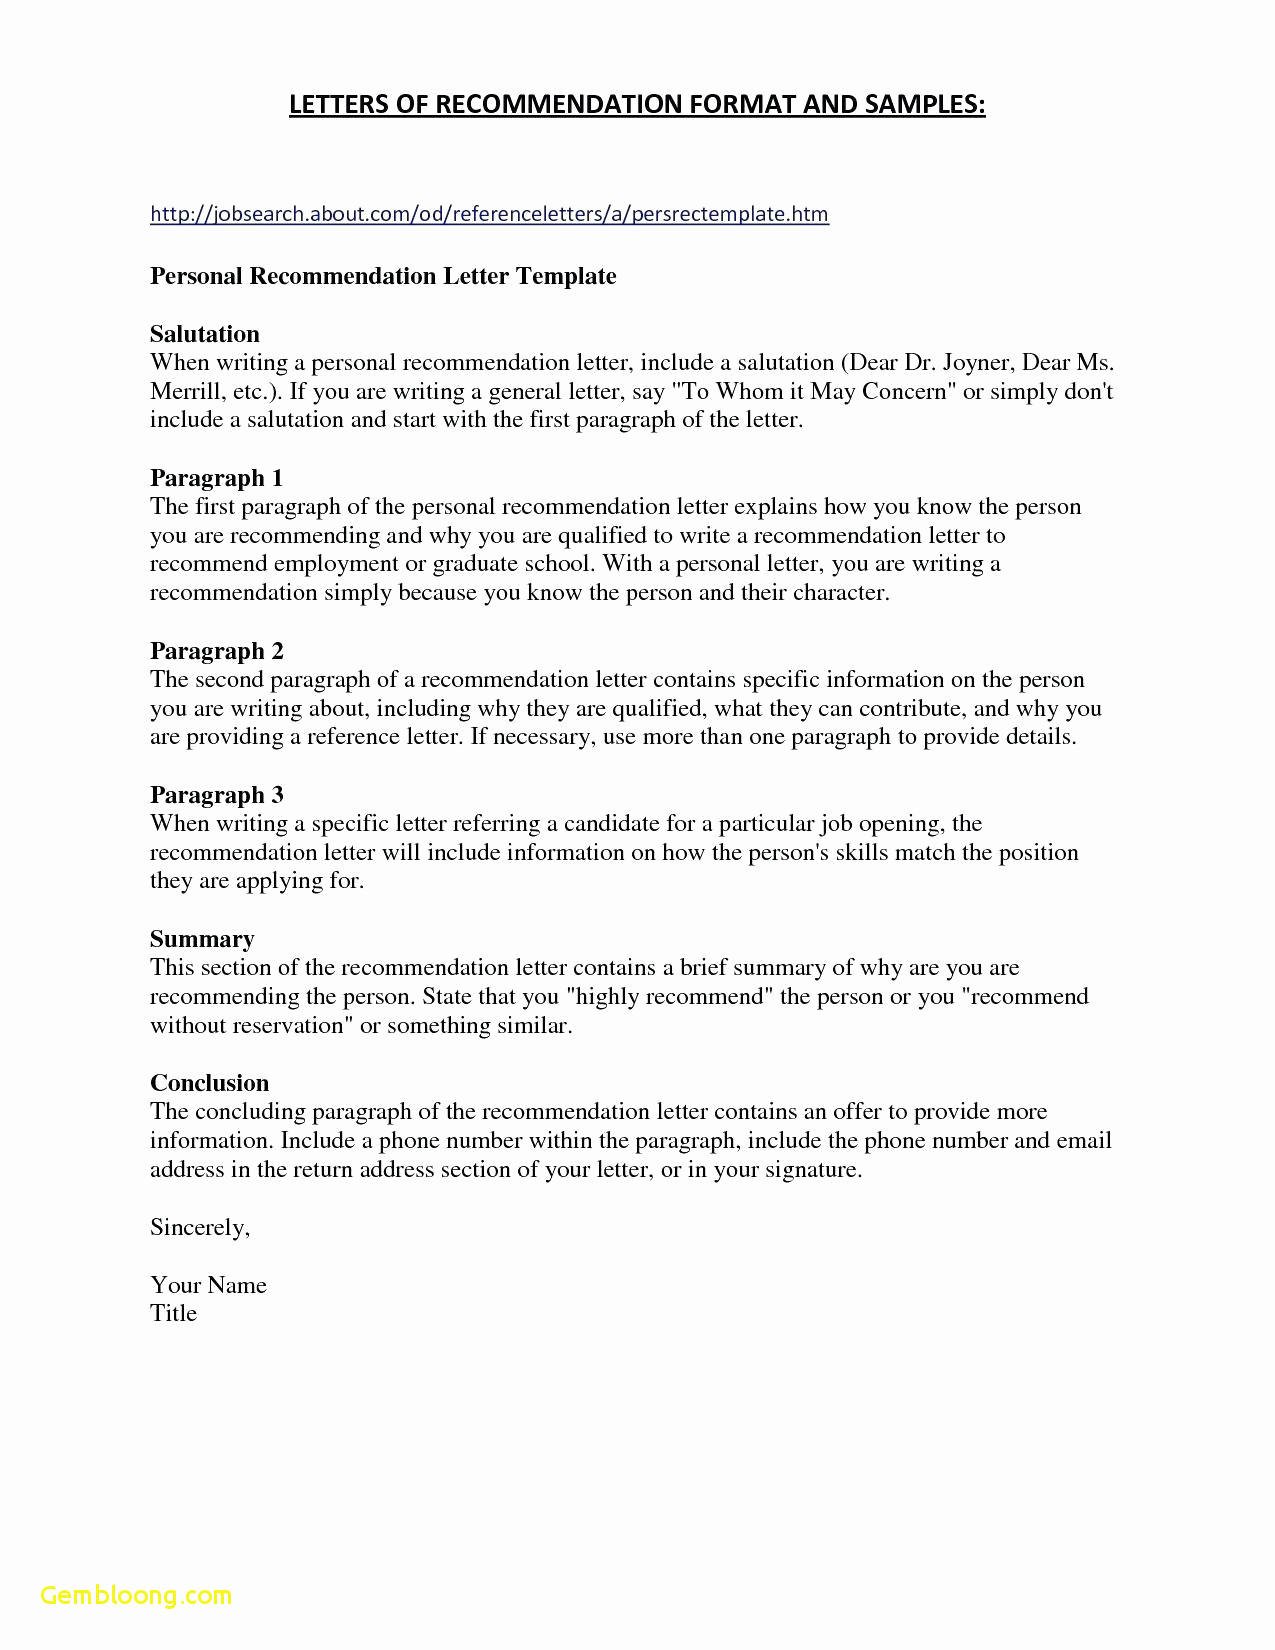 Hiring Letter Template - Personal Re Mendation Letter for Employment Lovely References for